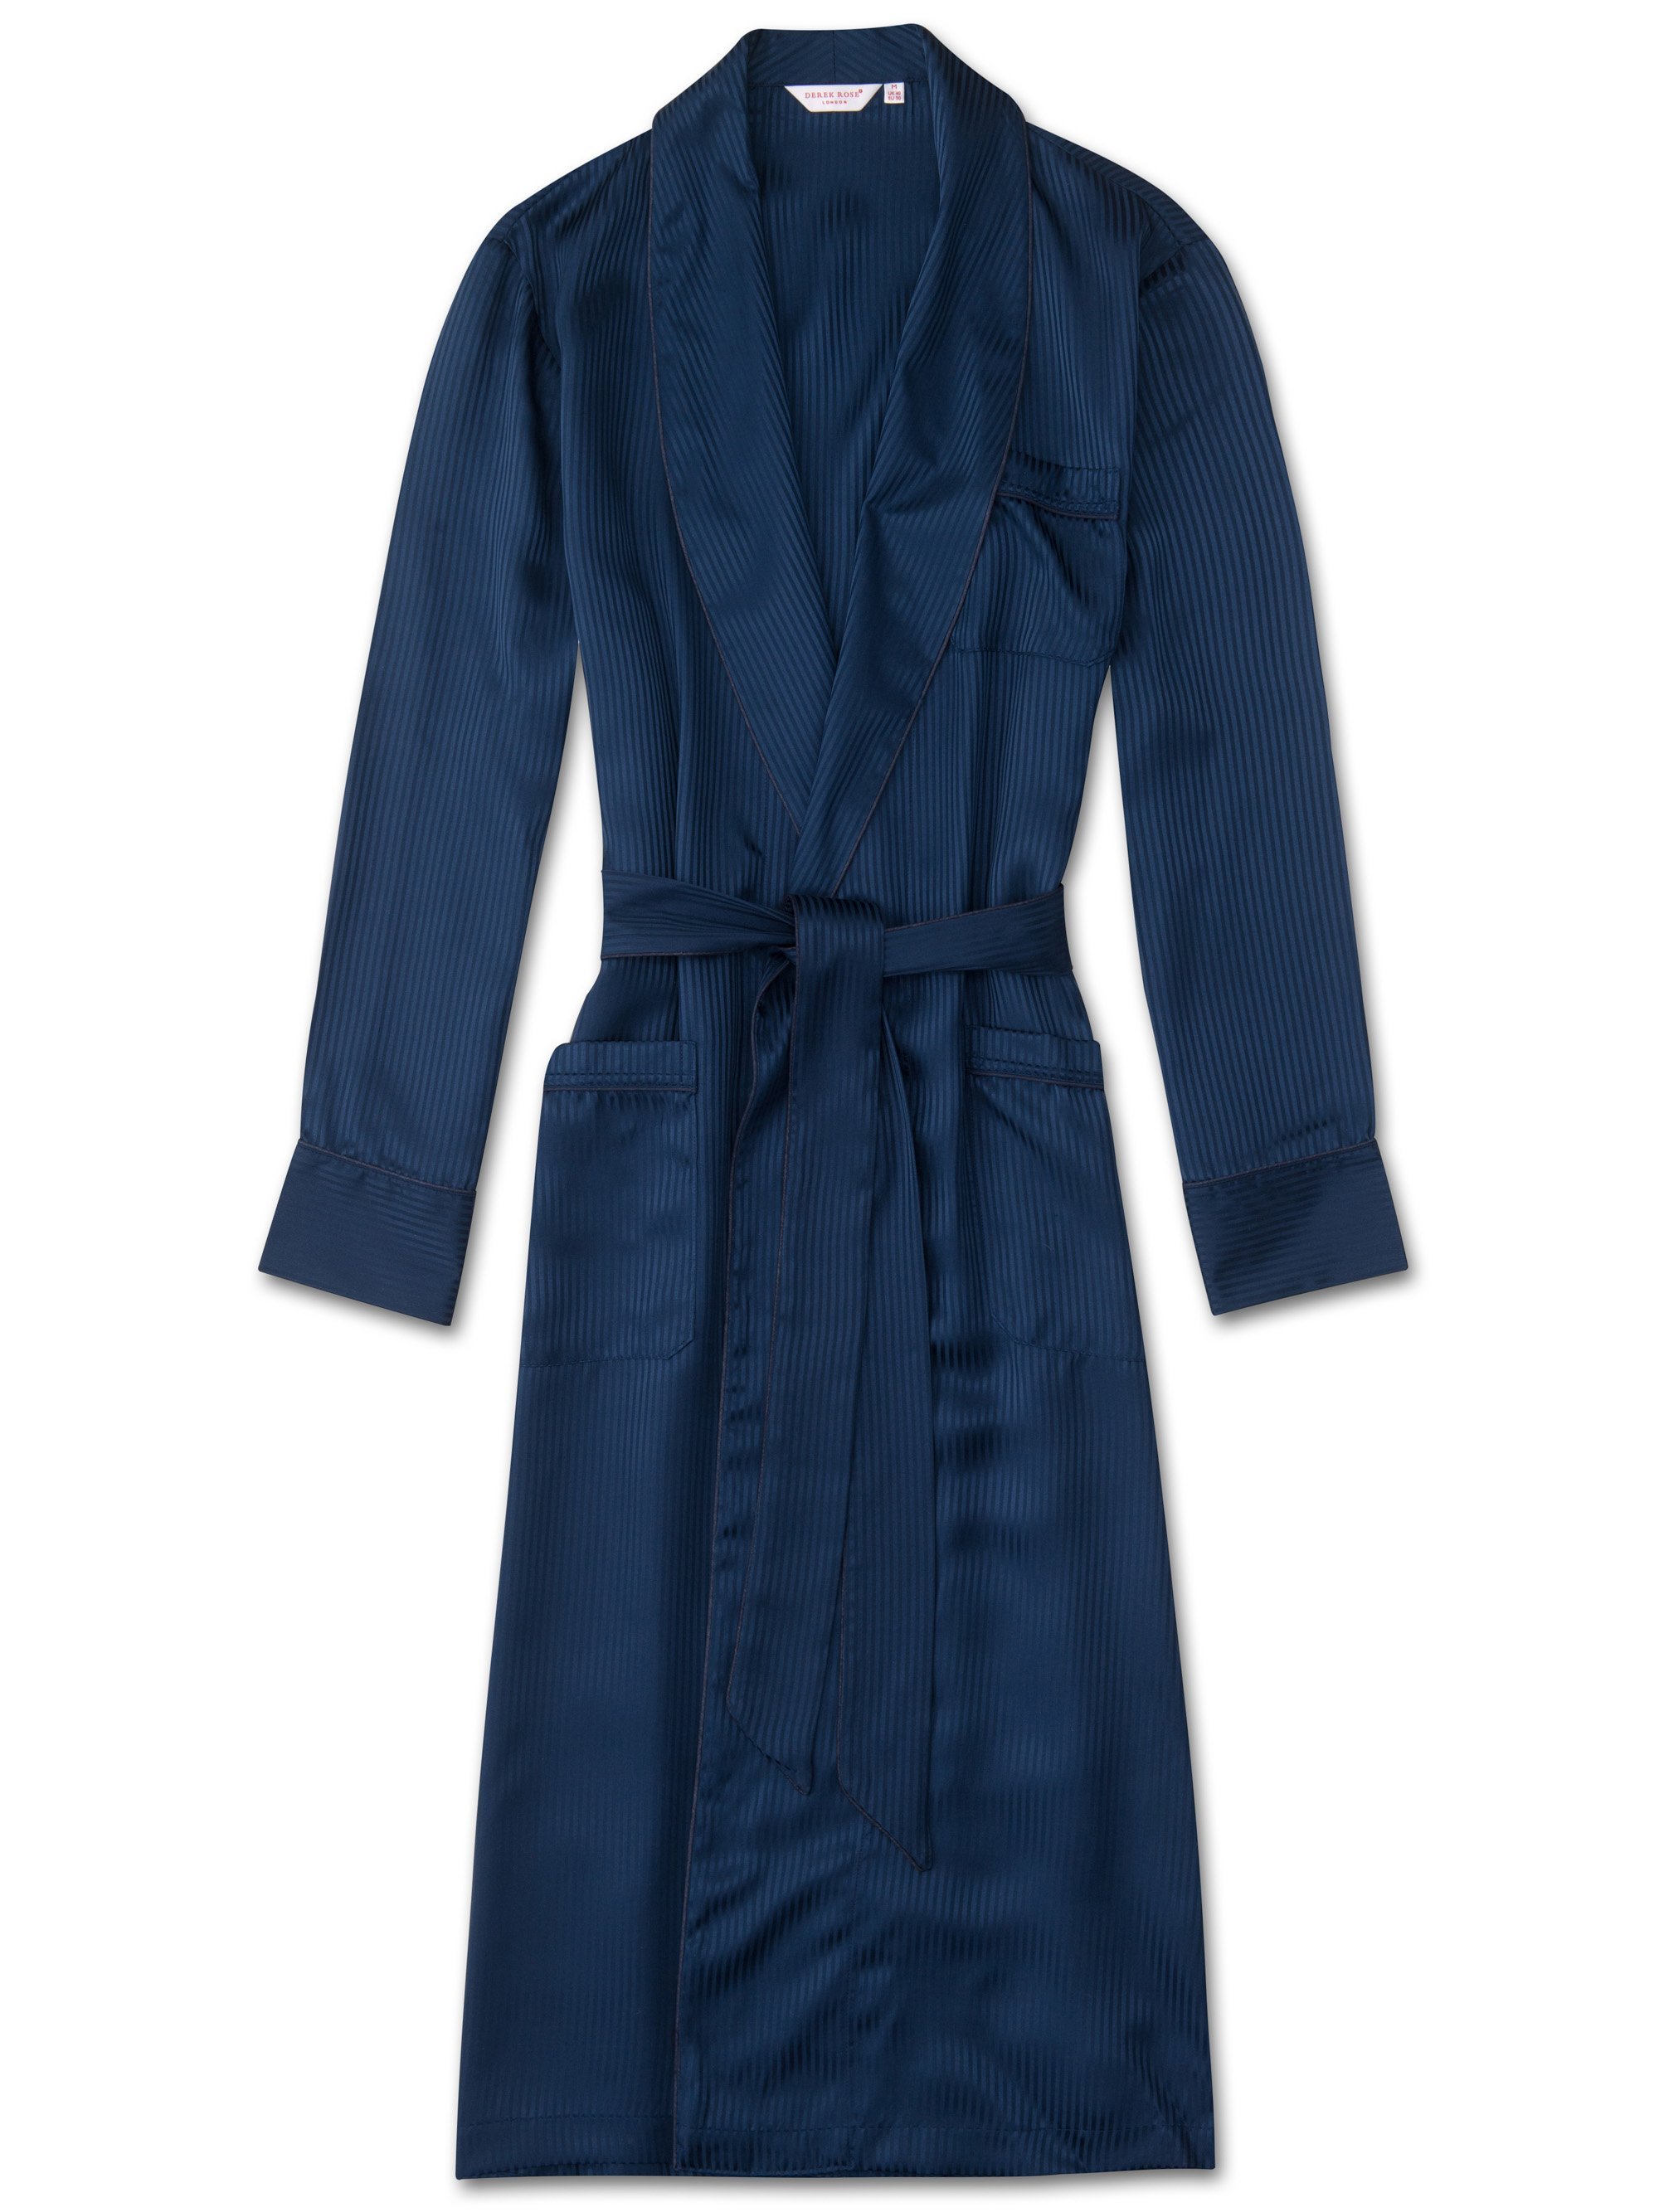 Men's Piped Dressing Gown Woburn 8 Pure Silk Satin Stripe Navy